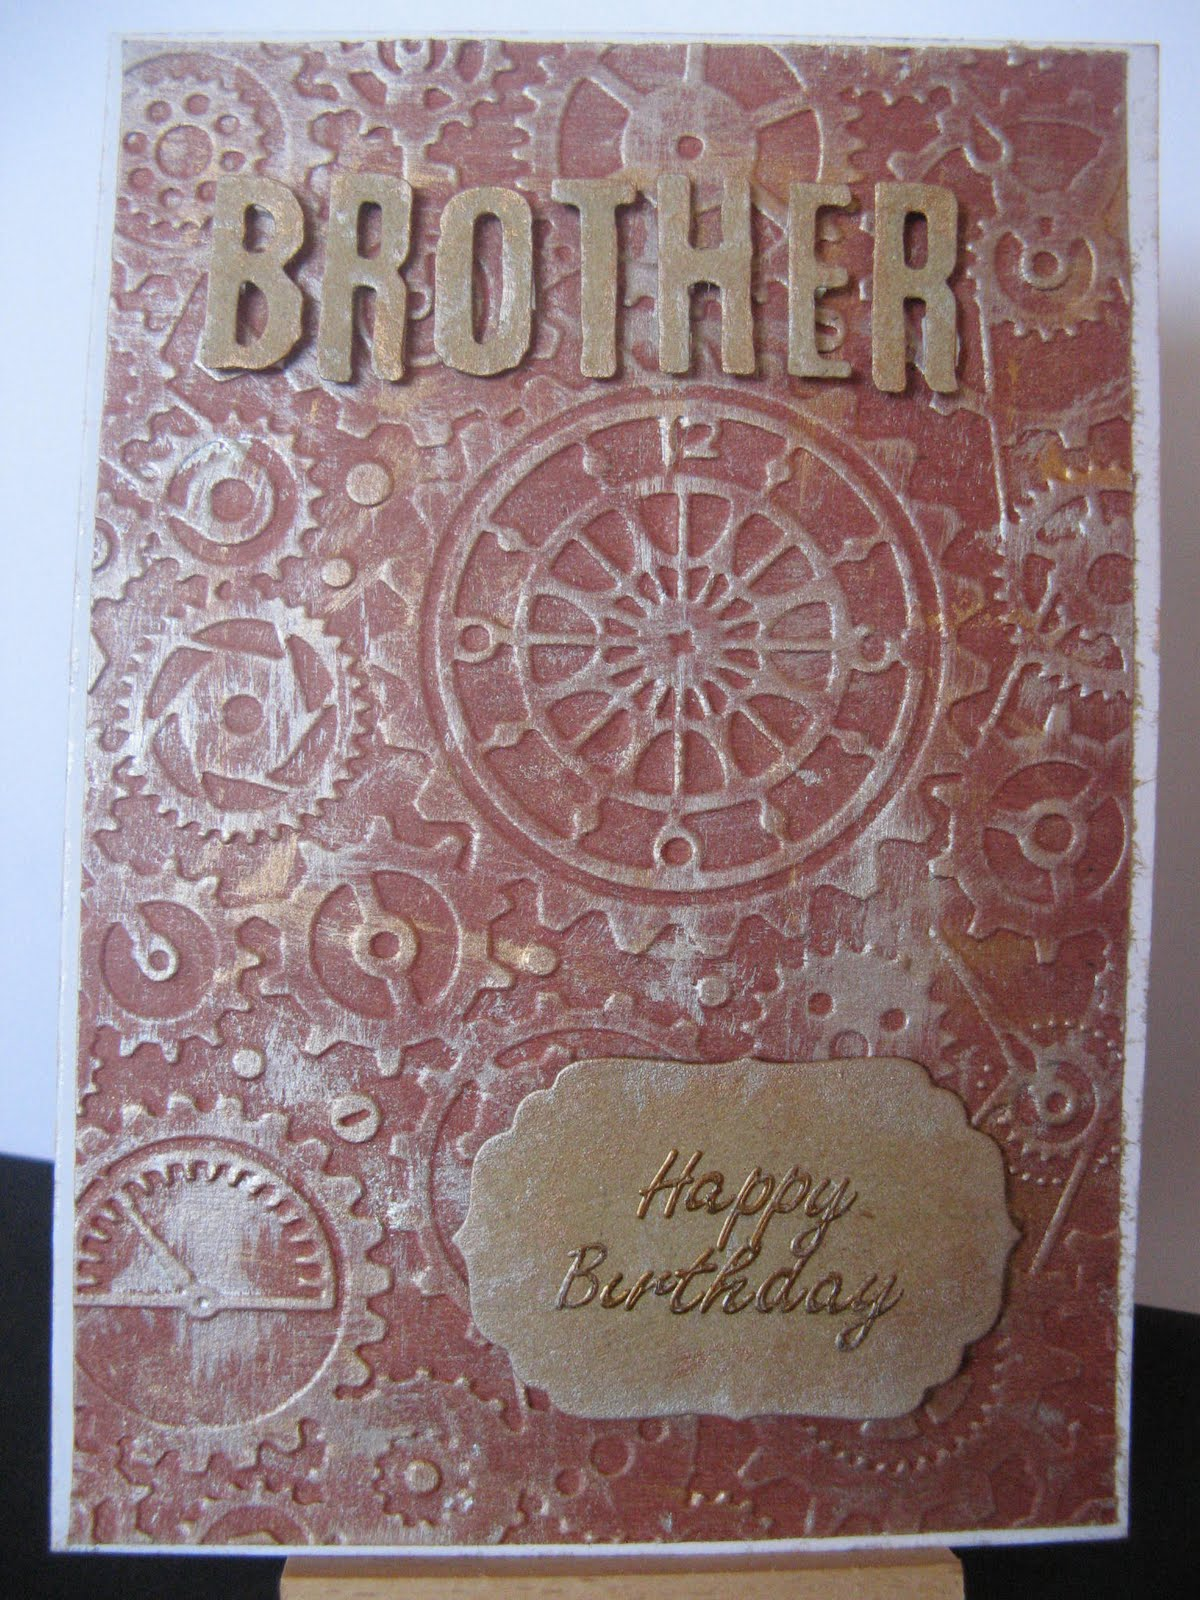 Cuttlebug Embossed Brother Birthday Card